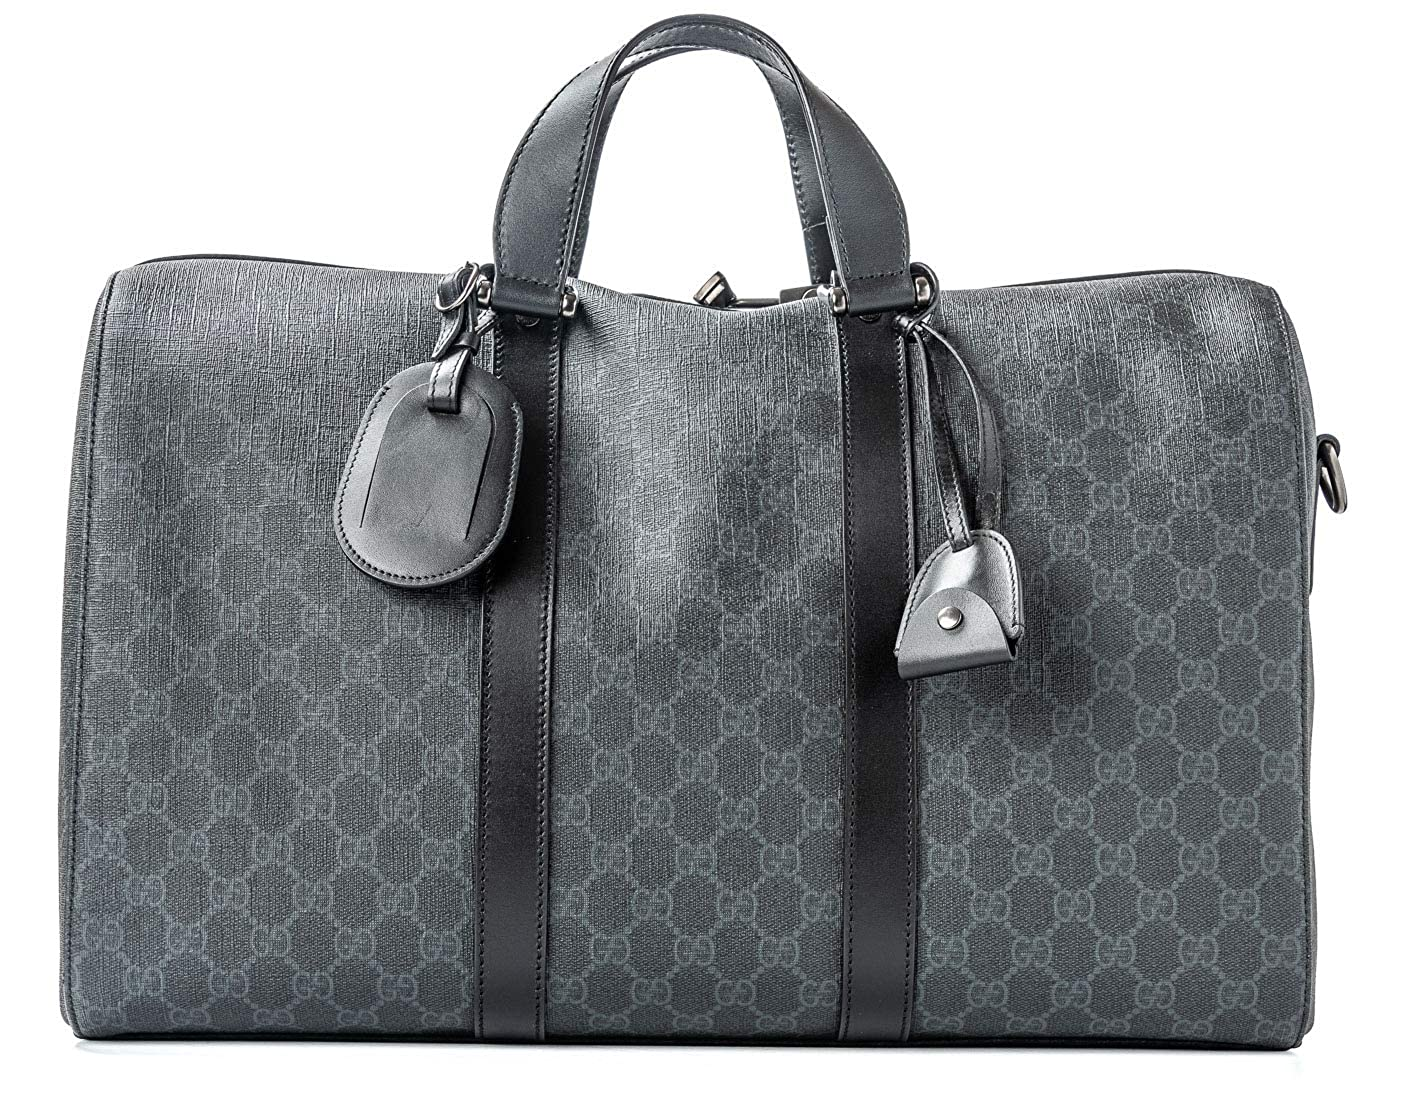 0ca7ed880d9713 Amazon.com: Gucci Duffle Luggage GG Supreme Carry On Bag Black Signature GG  Leather New: Shoes